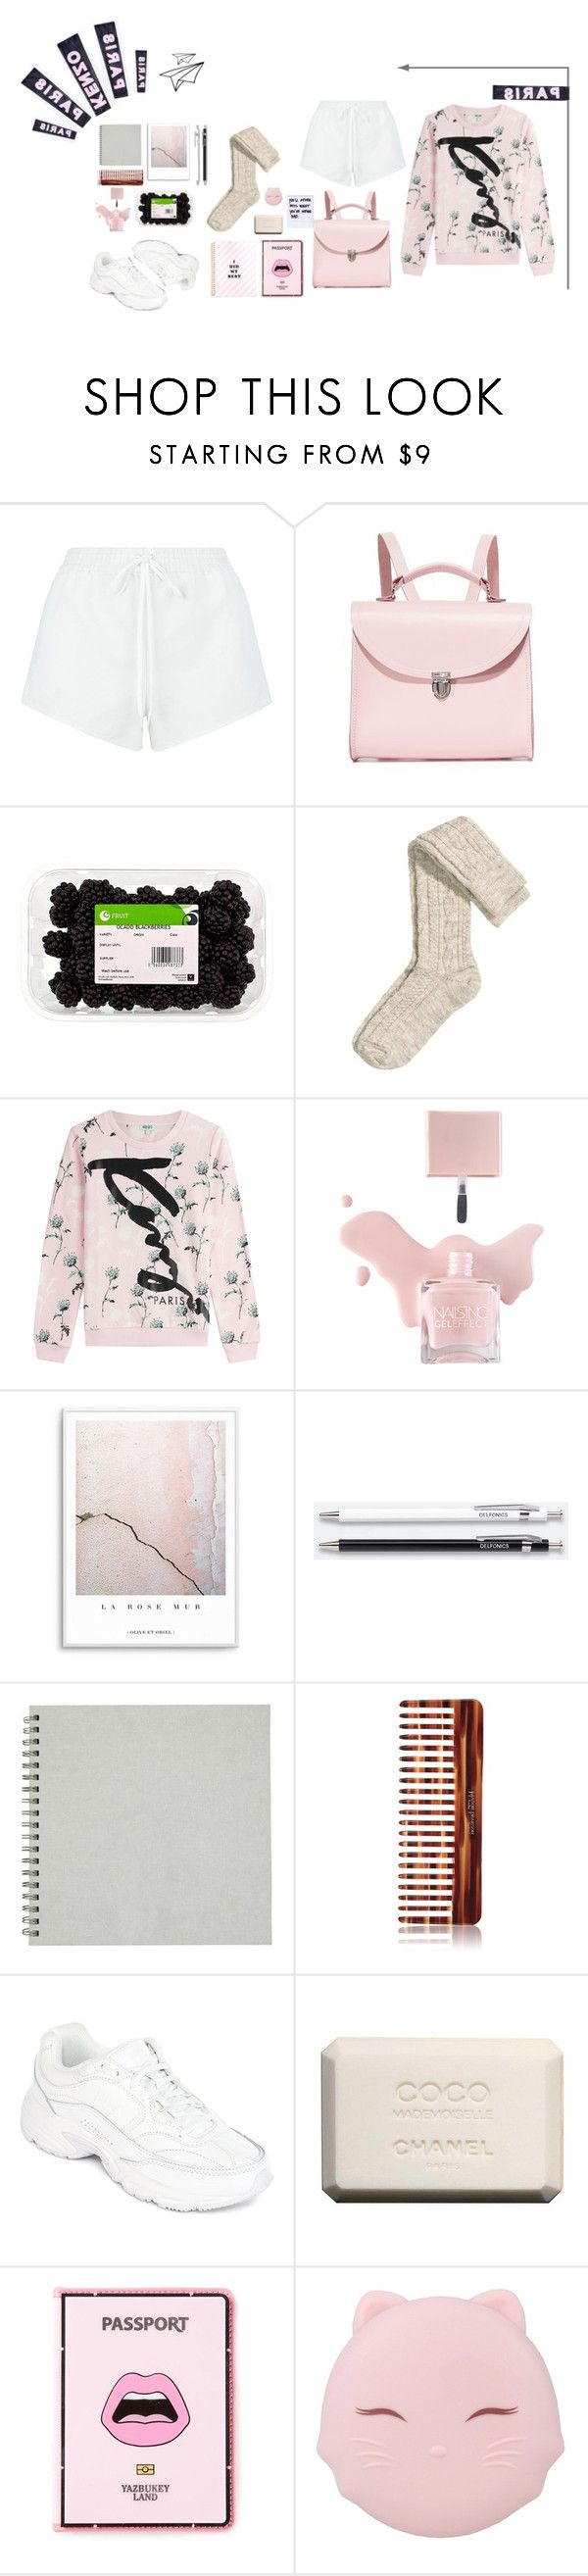 """You'll never miss what you're never had"" by dandinou ❤ liked on Polyvore featuring Chloé, The Cambridge Satchel Company, Kenzo, Unison, Mason Pearson, Fila, Chanel, Yazbukey and TONYMOLY"